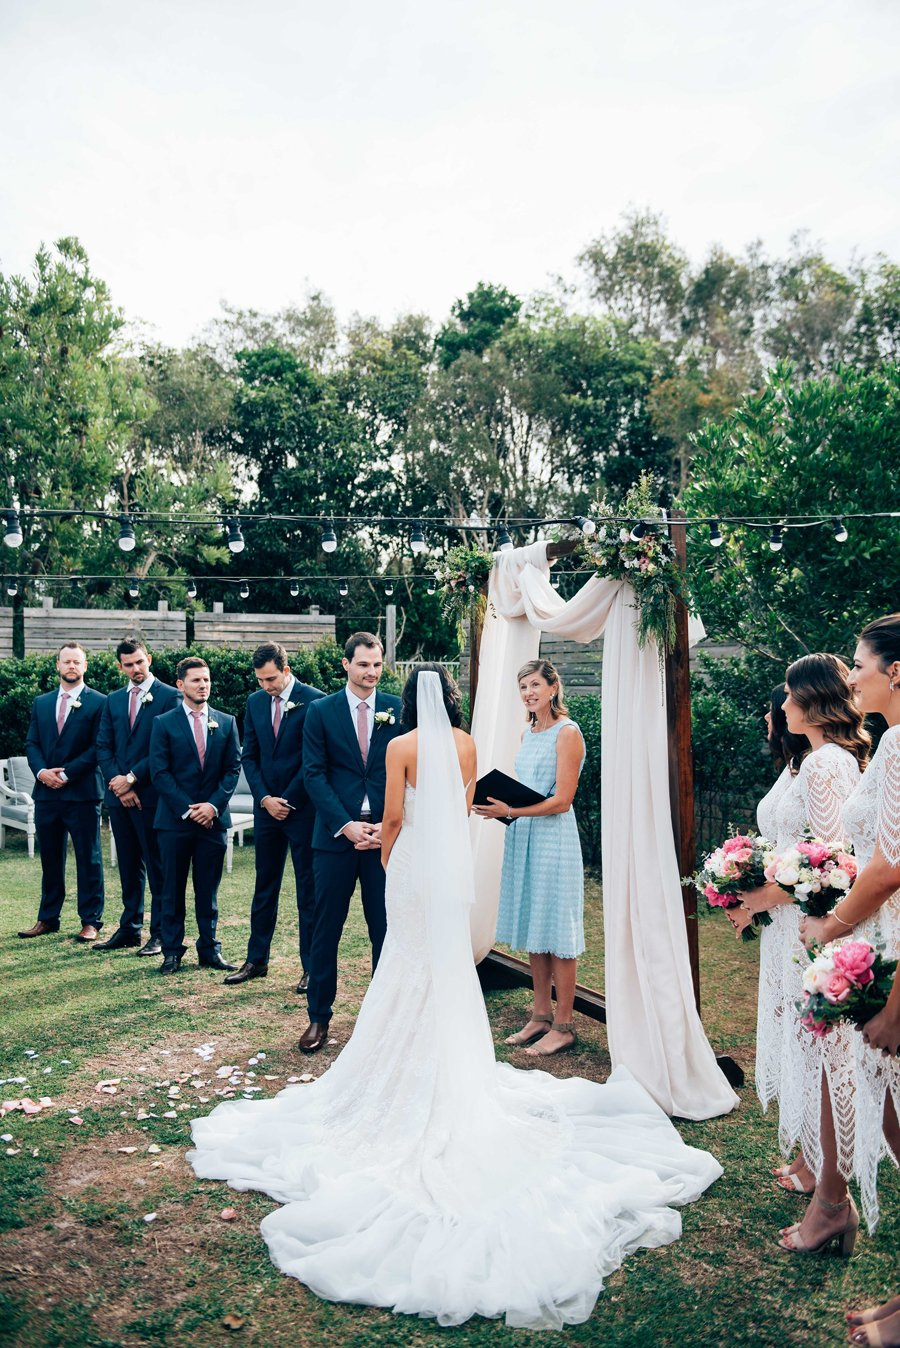 Aimee-Jane and Kristen, Osteria Casuarina Real Wedding, Tweed Coast Wedding Venue - Photo029